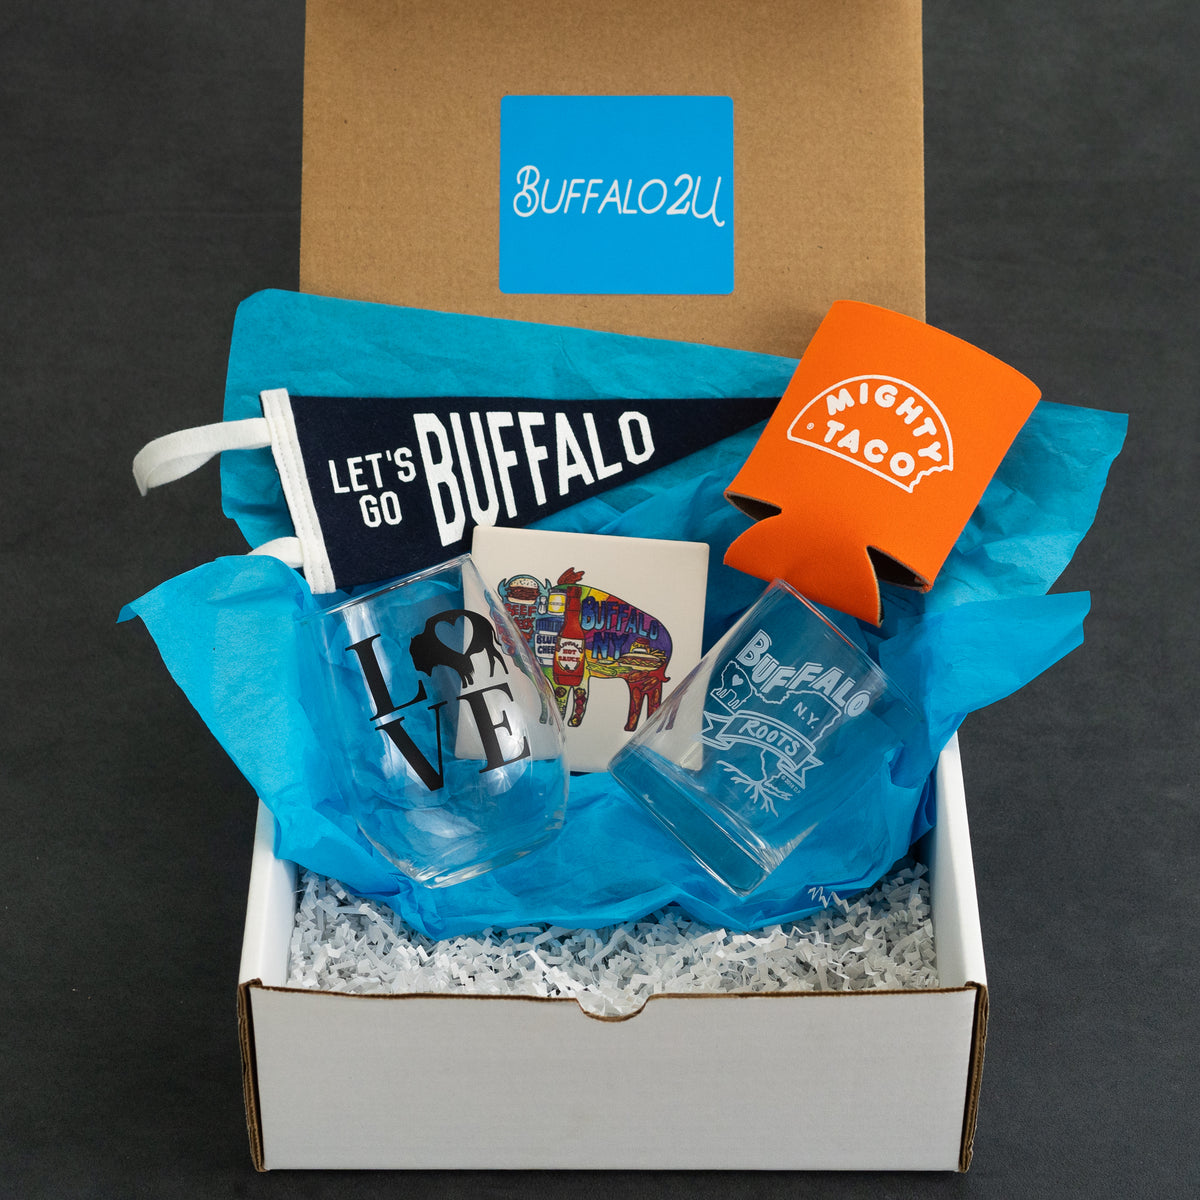 the best Buffalo gifts for moving away